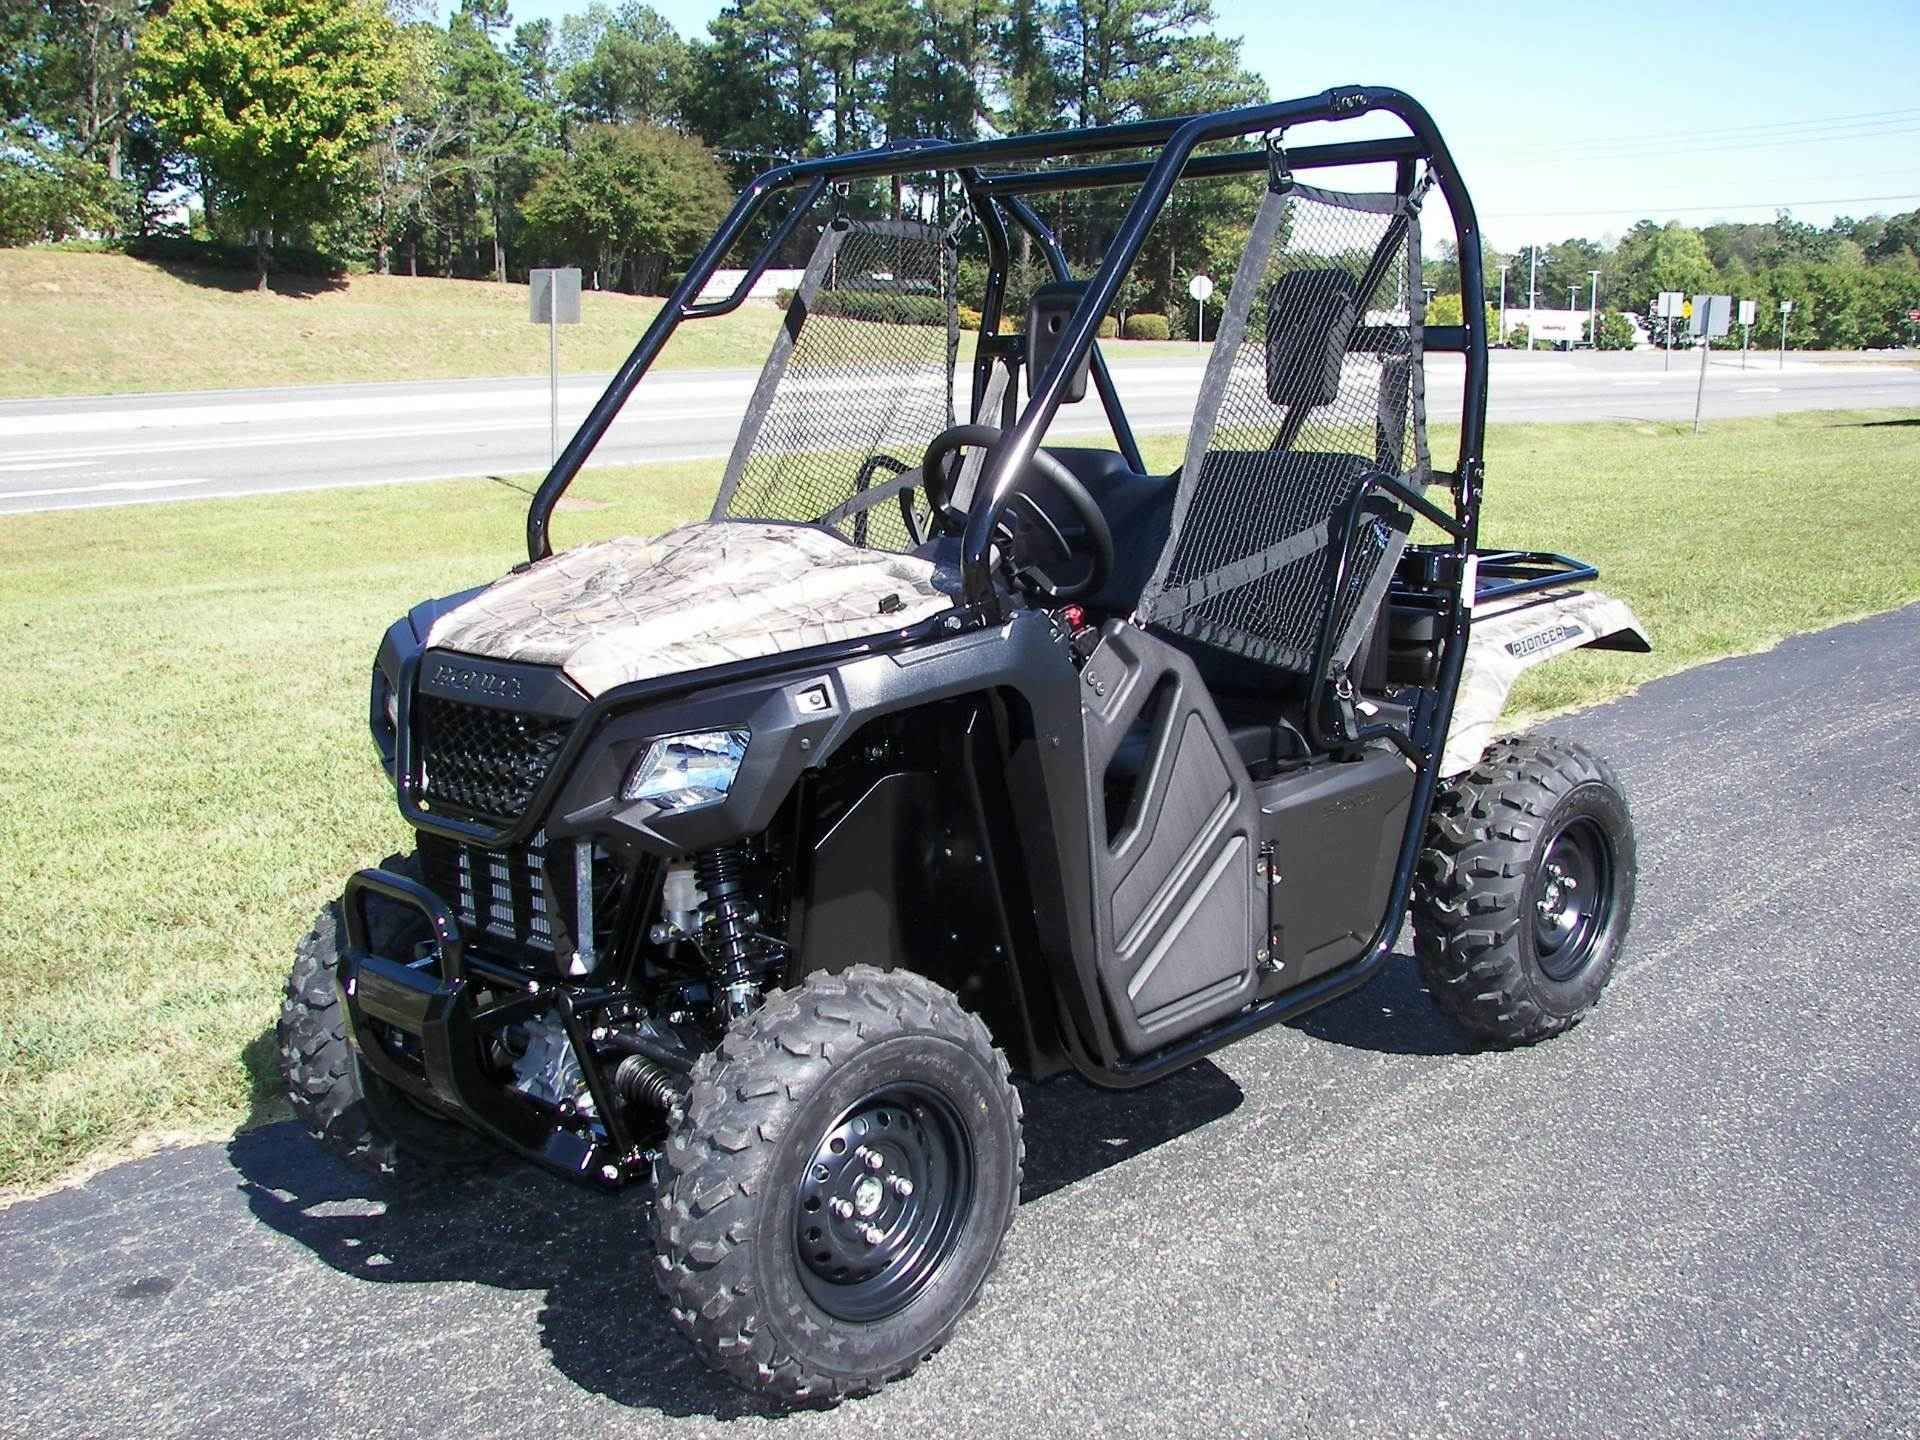 New 2017 Honda Pioneera 500 Camo Atvs For Sale In North Carolina This Is A New 2017 Honda Pioneer 500 This Is A Unique Si Honda Pioneer 500 Honda Fun Sized